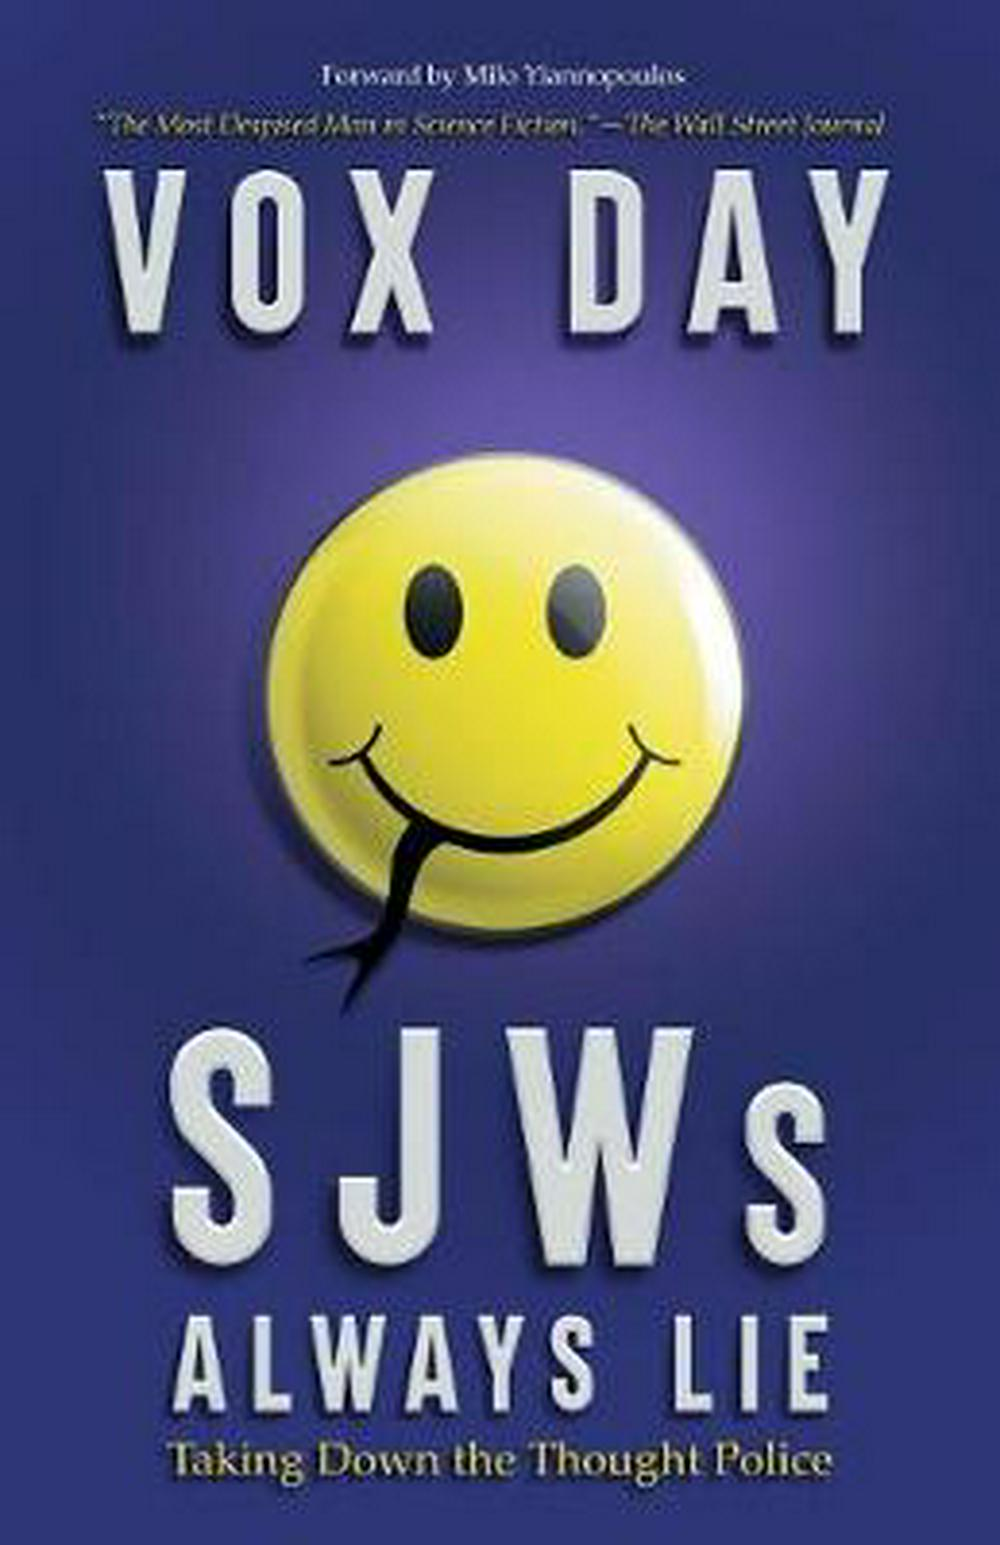 SJWs Always Lie: Taking Down the Thought Police by Vox Day, ISBN: 9789527065686